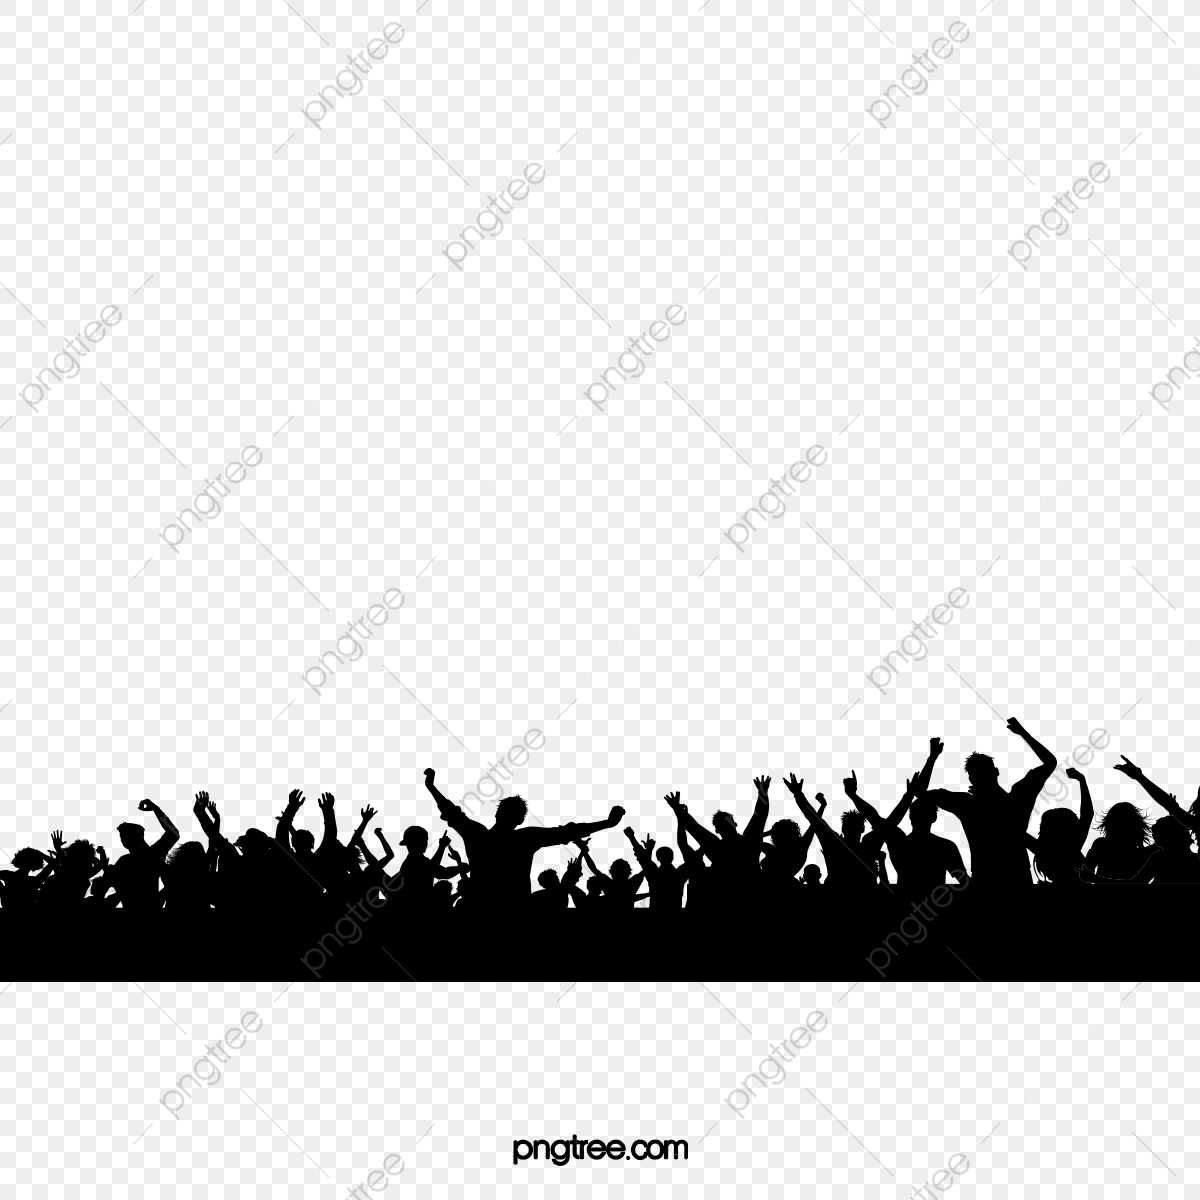 Crowd clipart back crowd. Cheering concert png transparent